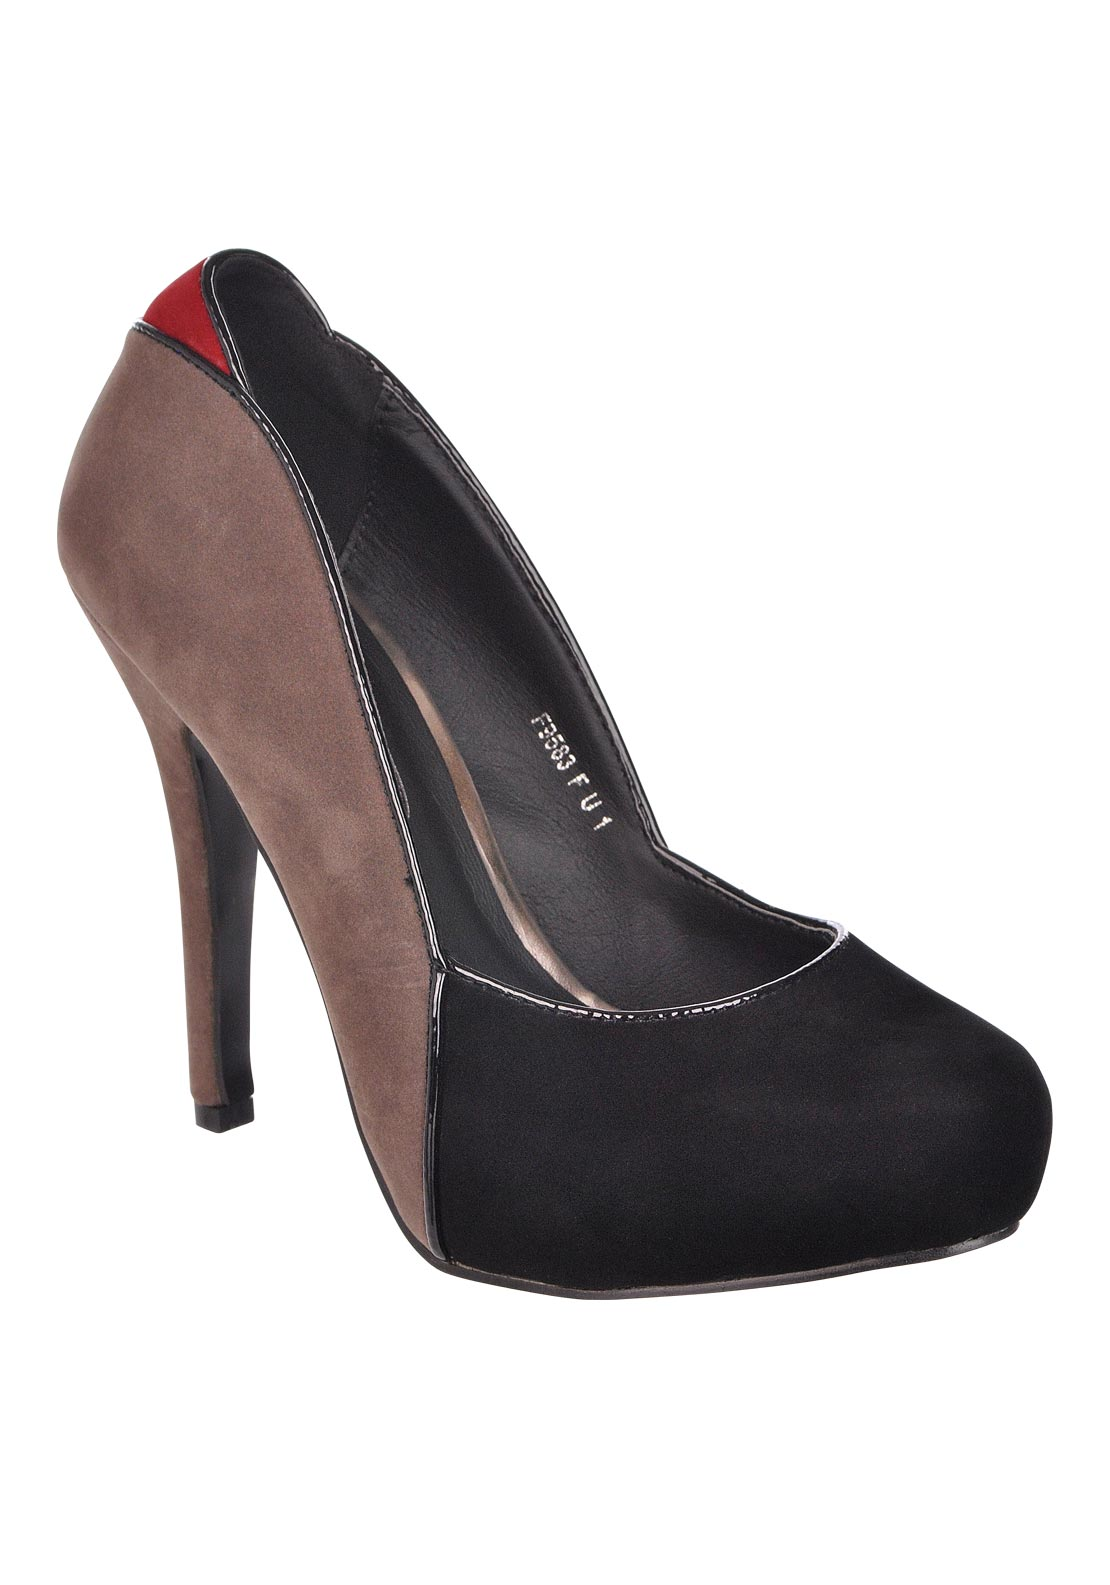 Boutique Two Tone Suede High Heel Shoe Grey/Black